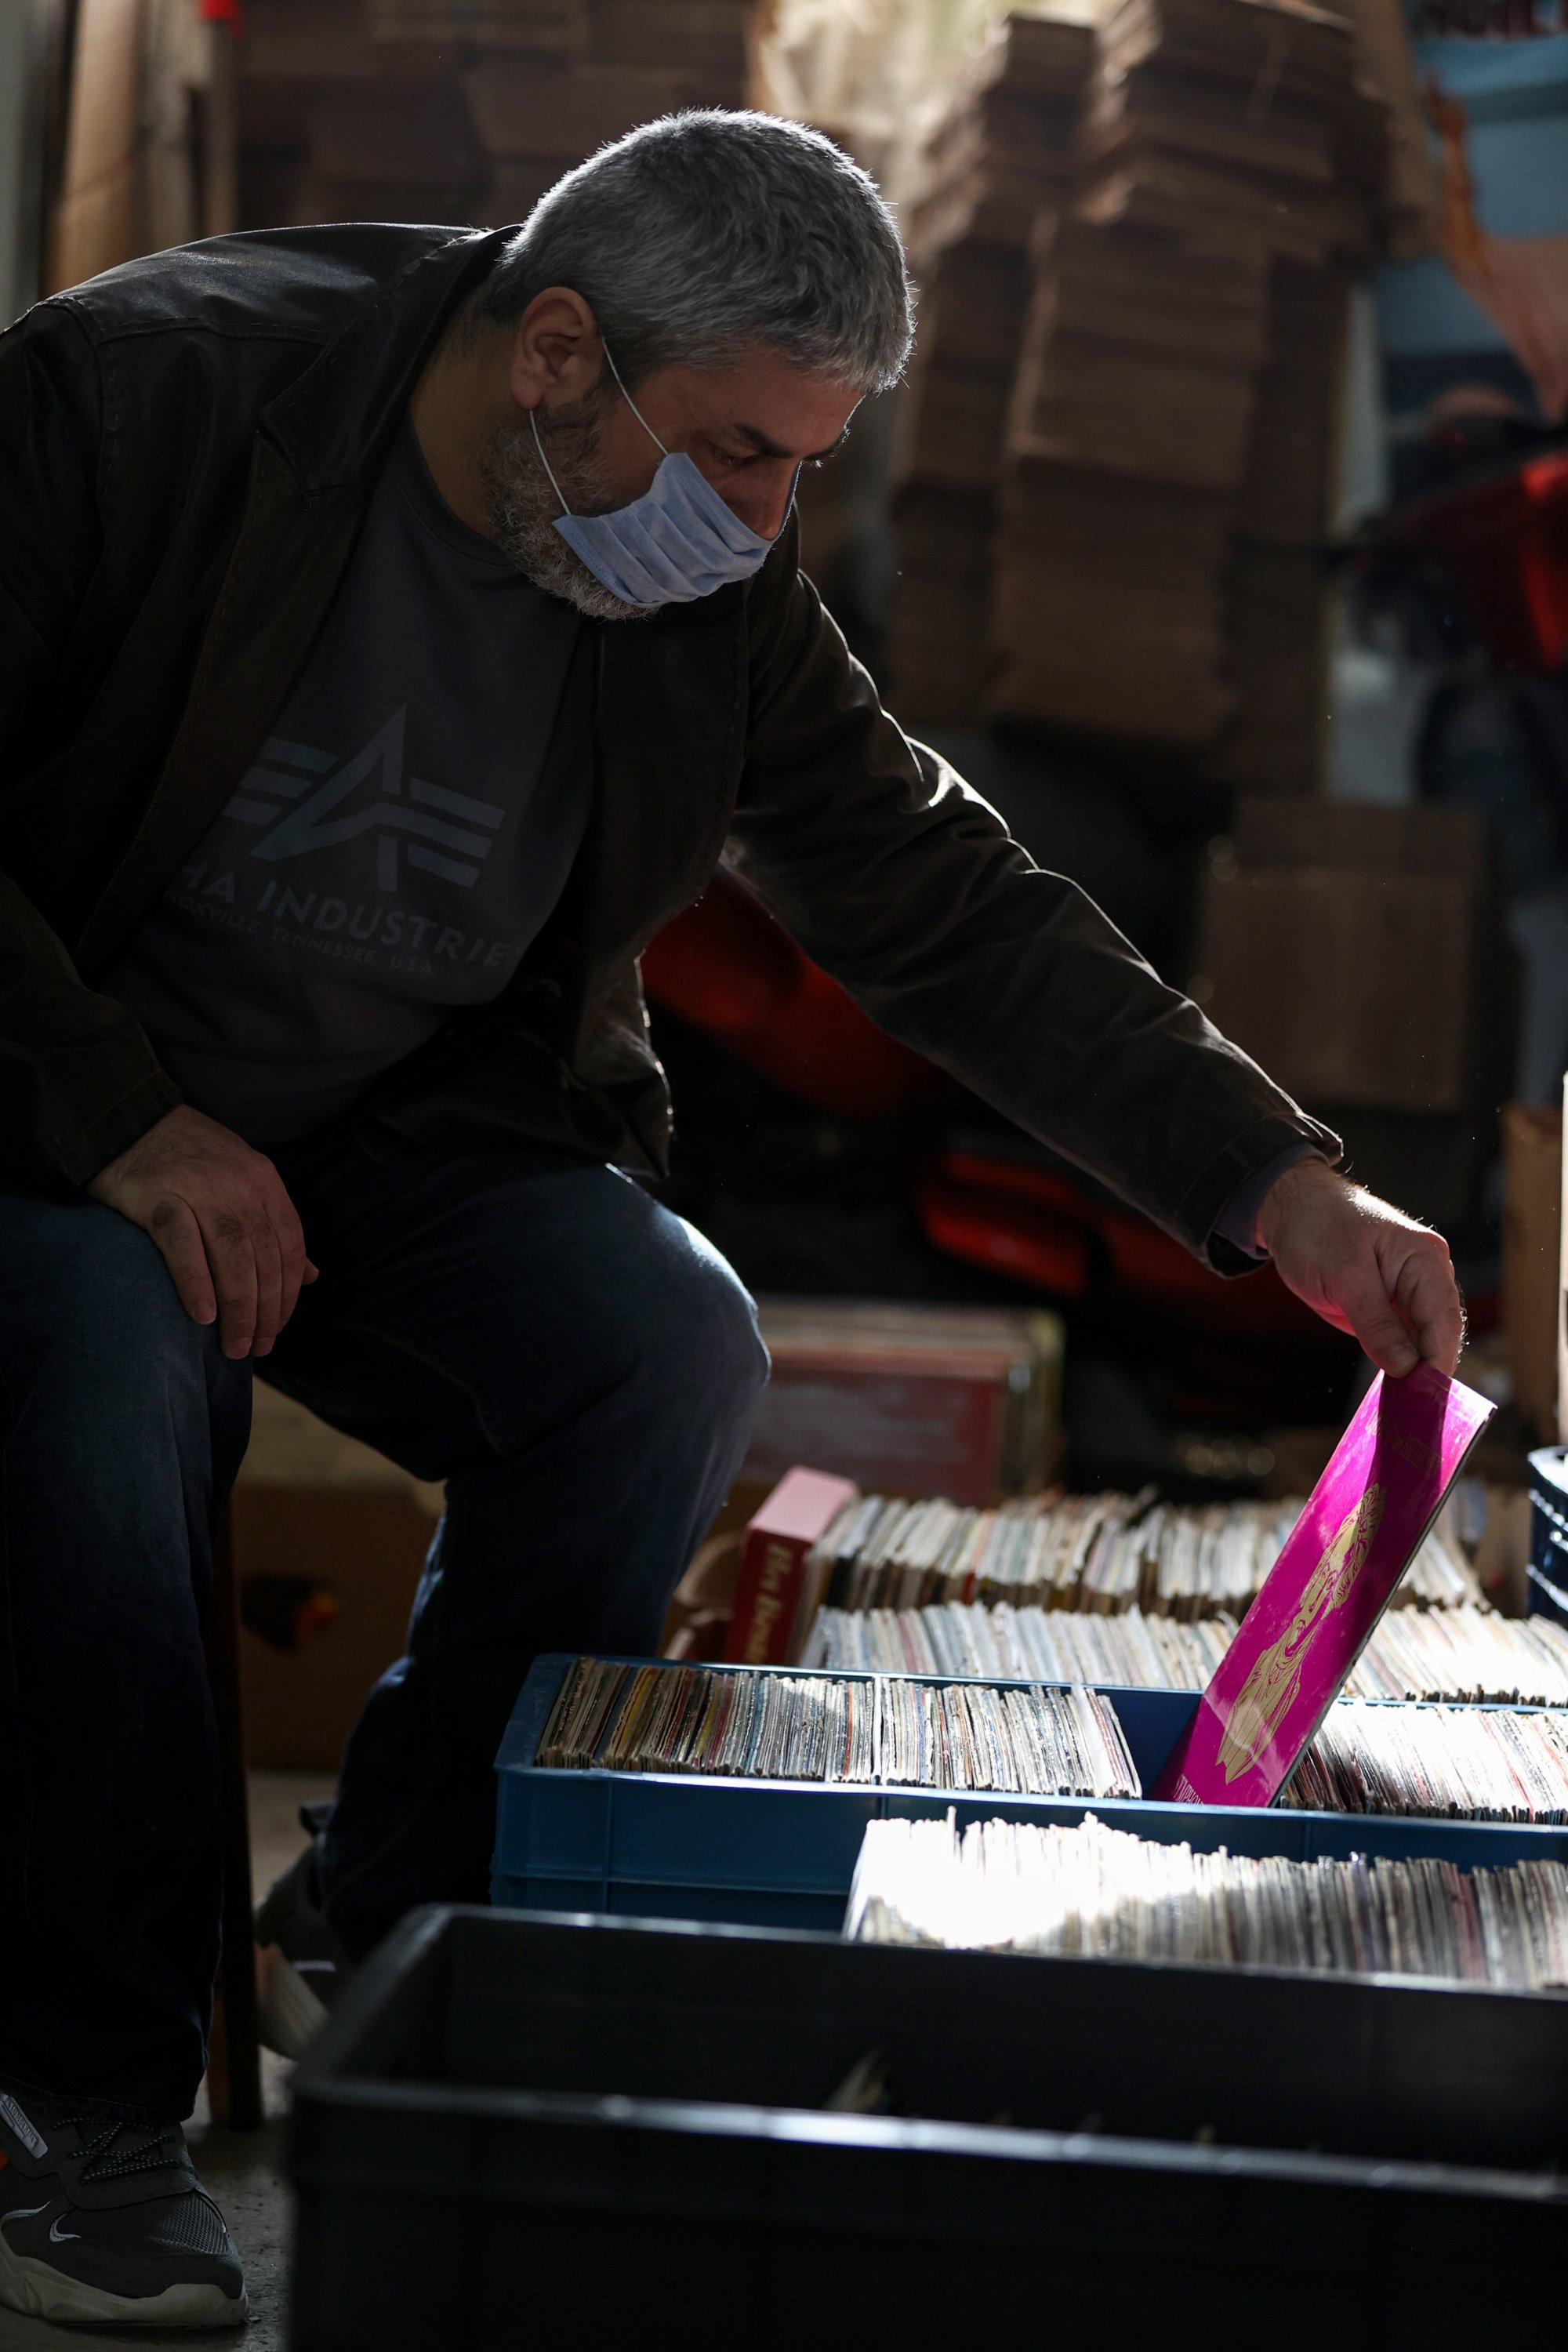 Vedat Ispir, a shopkeeper of vinyl records, picks up a record in his shop in Istanbul, Turkey, Jan. 28, 2021. (AA Photo)